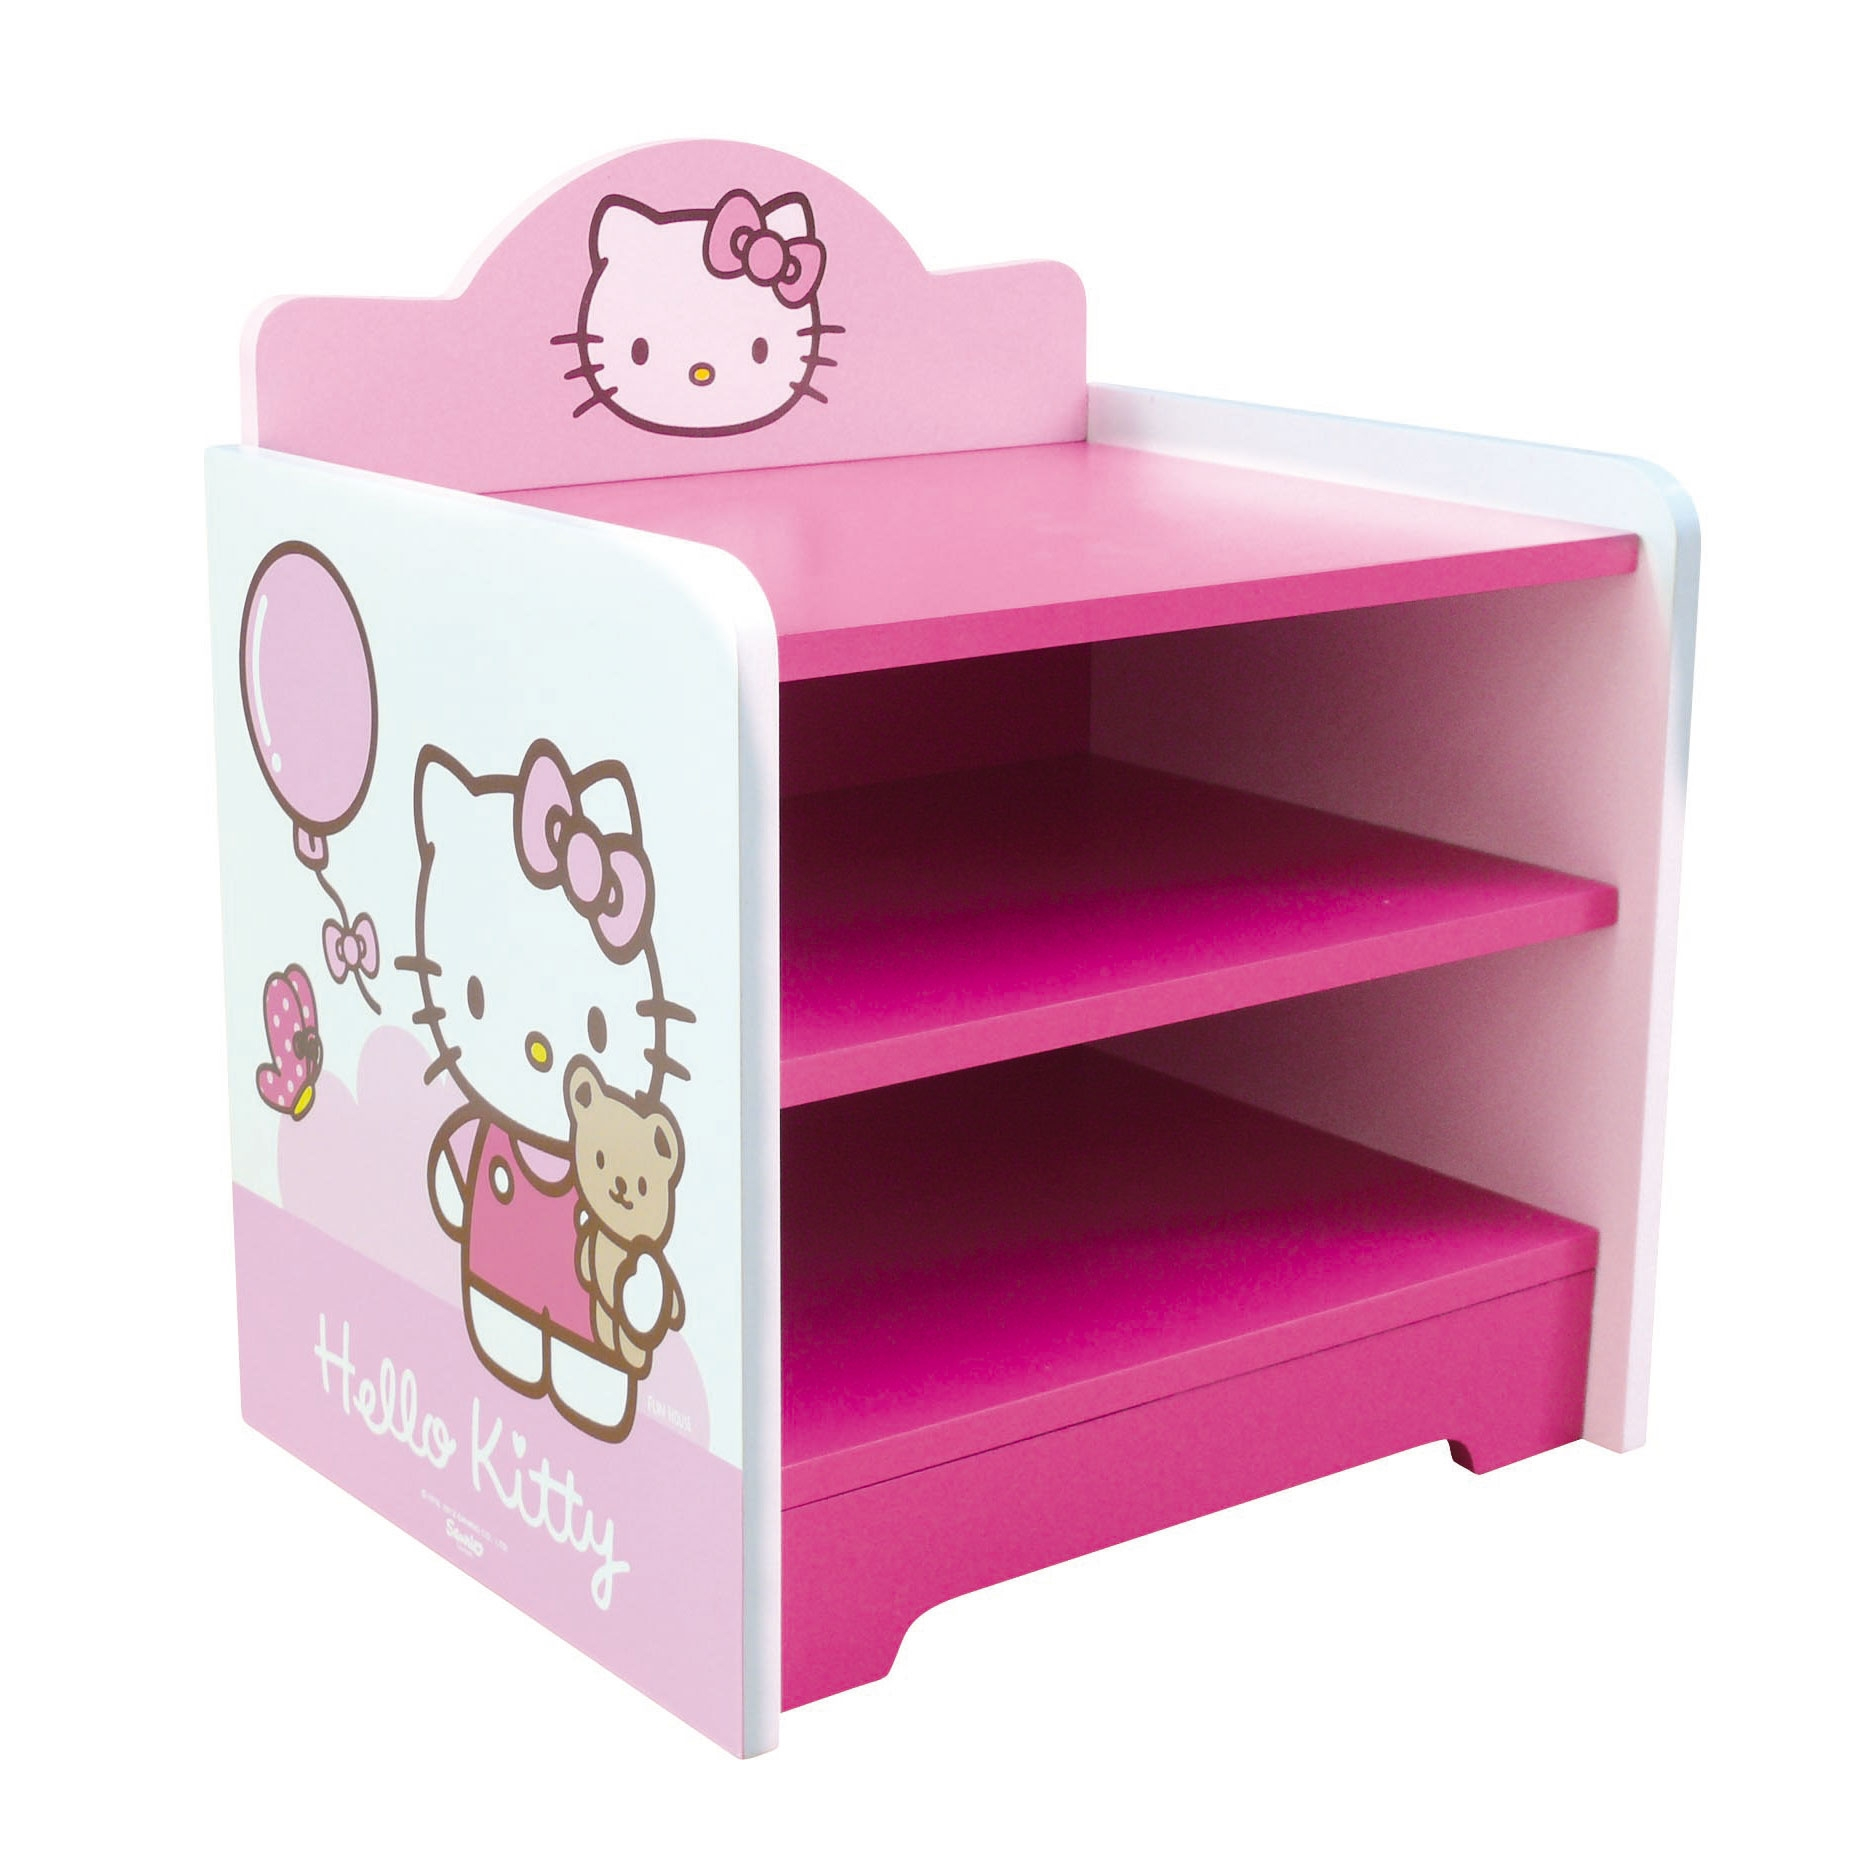 Table chevet fille good chevet en verre with table chevet fille hello kitty table de chevet - Lit hello kitty conforama ...